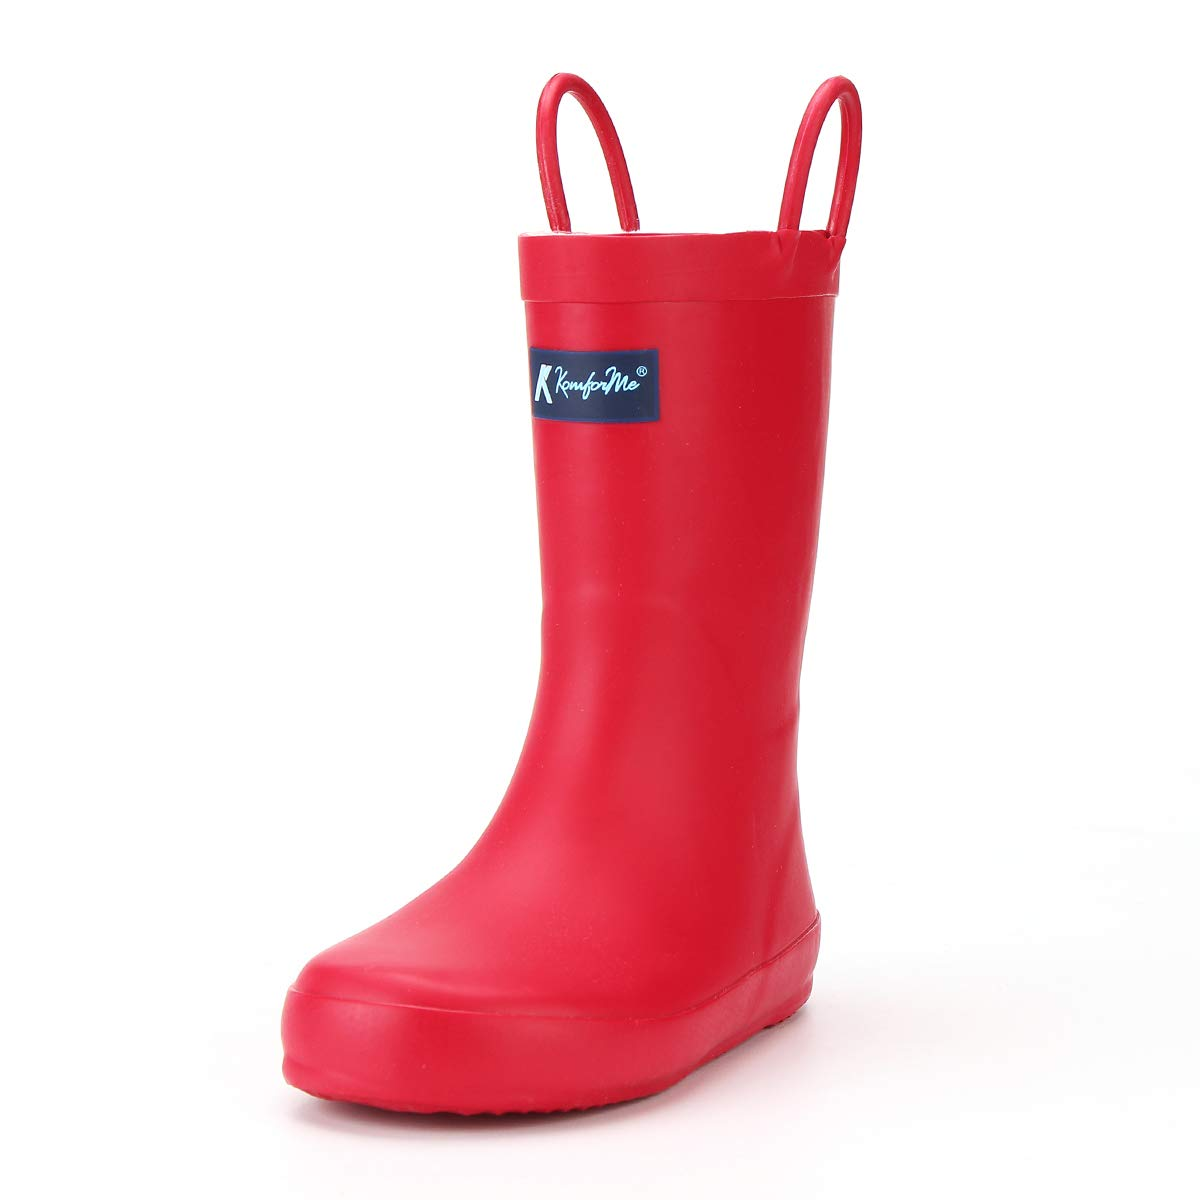 KomForme Kids Rain Boots, Waterproof Rubber Matte Boots with Reflective Stripes and Easy-on Handles